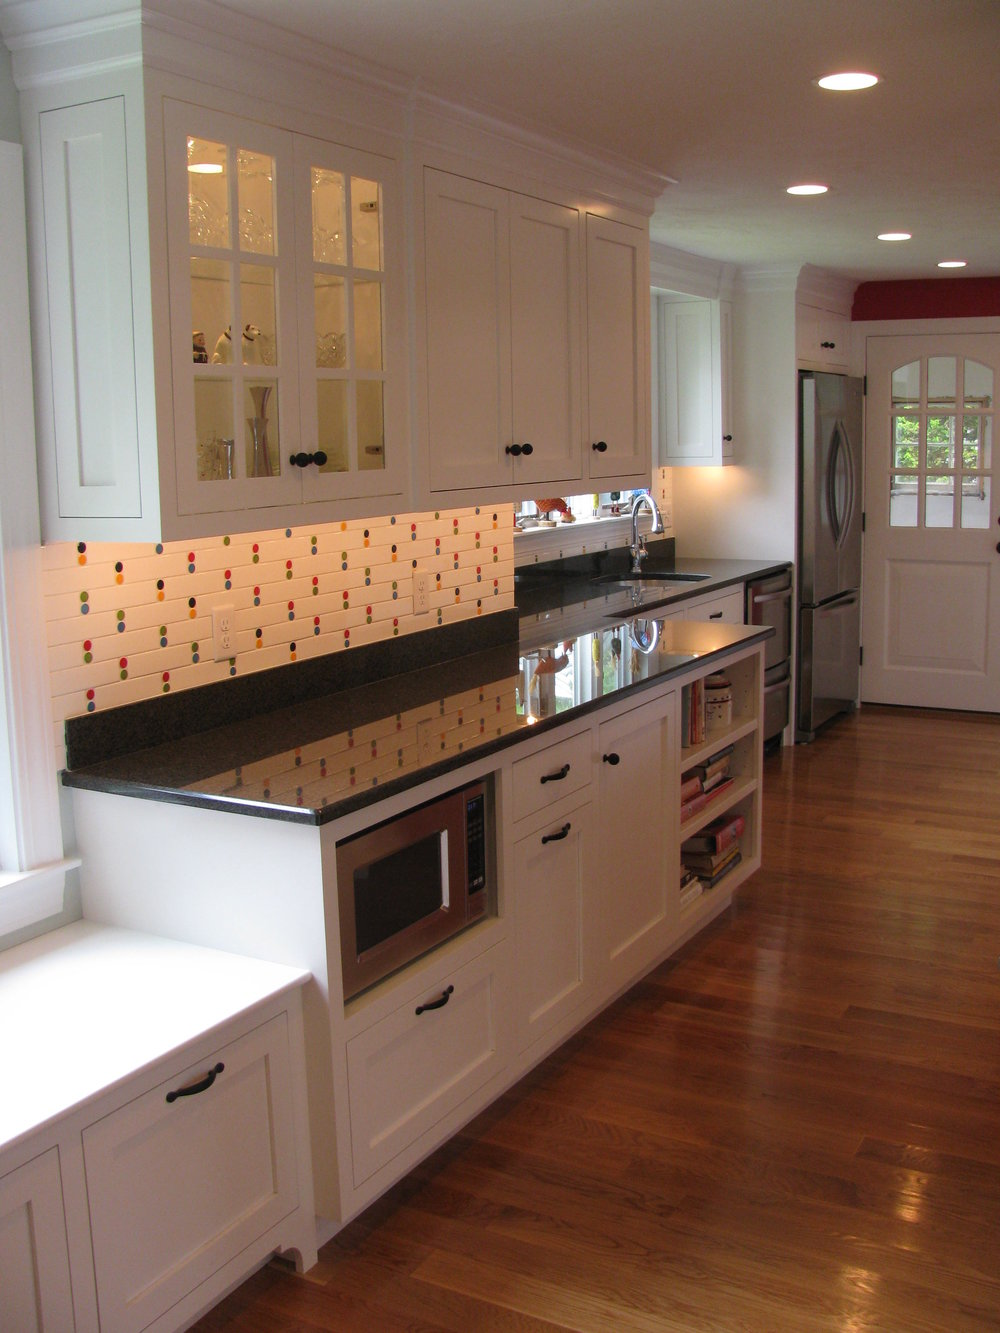 Thomas Kitchen 035.jpg